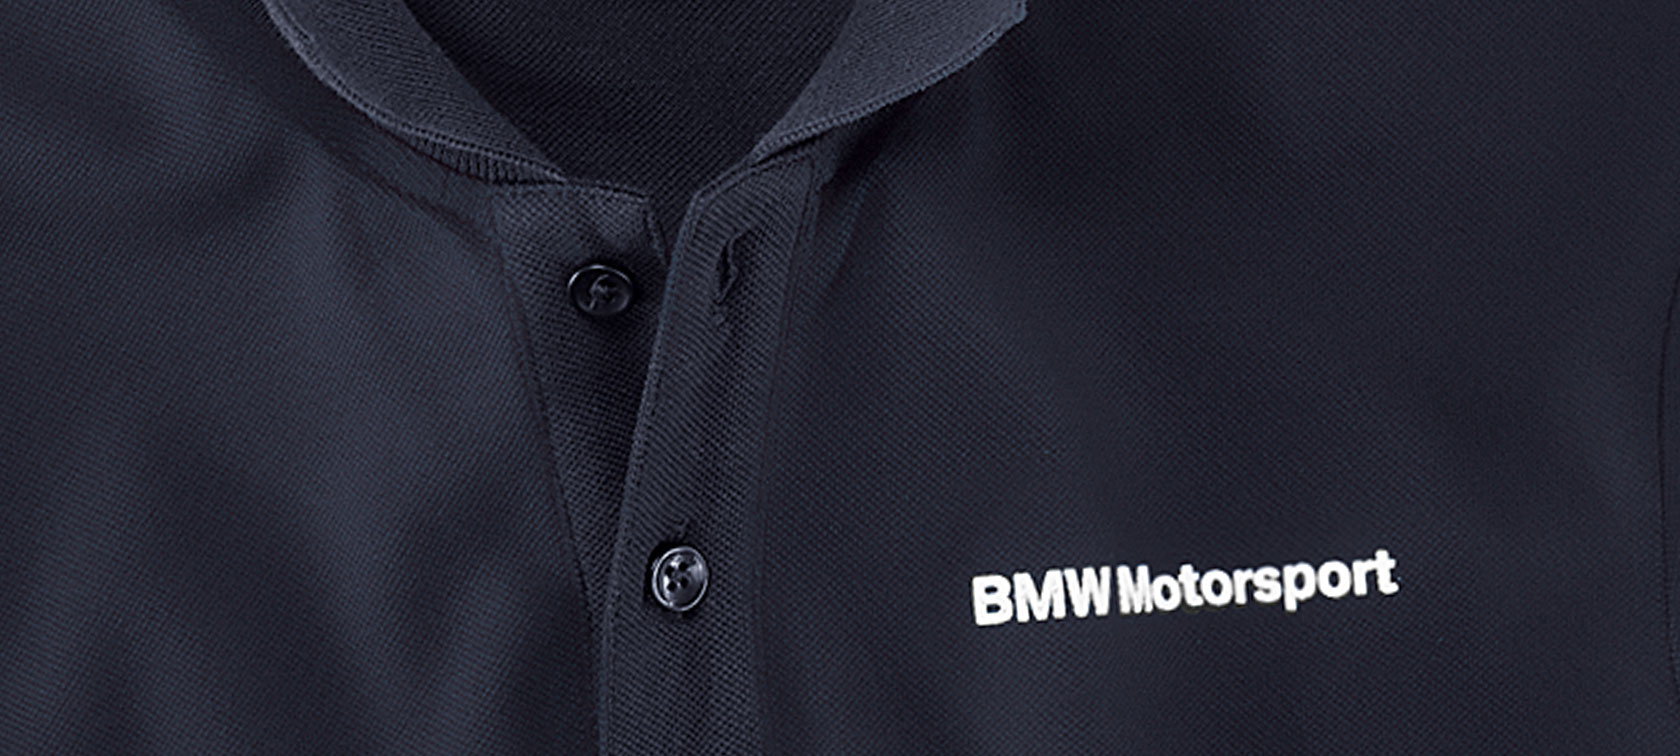 Motorsport Bmw LifestyleCollection Motorsport Bmw LifestyleCollection Bmw LifestyleCollection LifestyleCollection Motorsport Bmw Motorsport 8kn0OPw